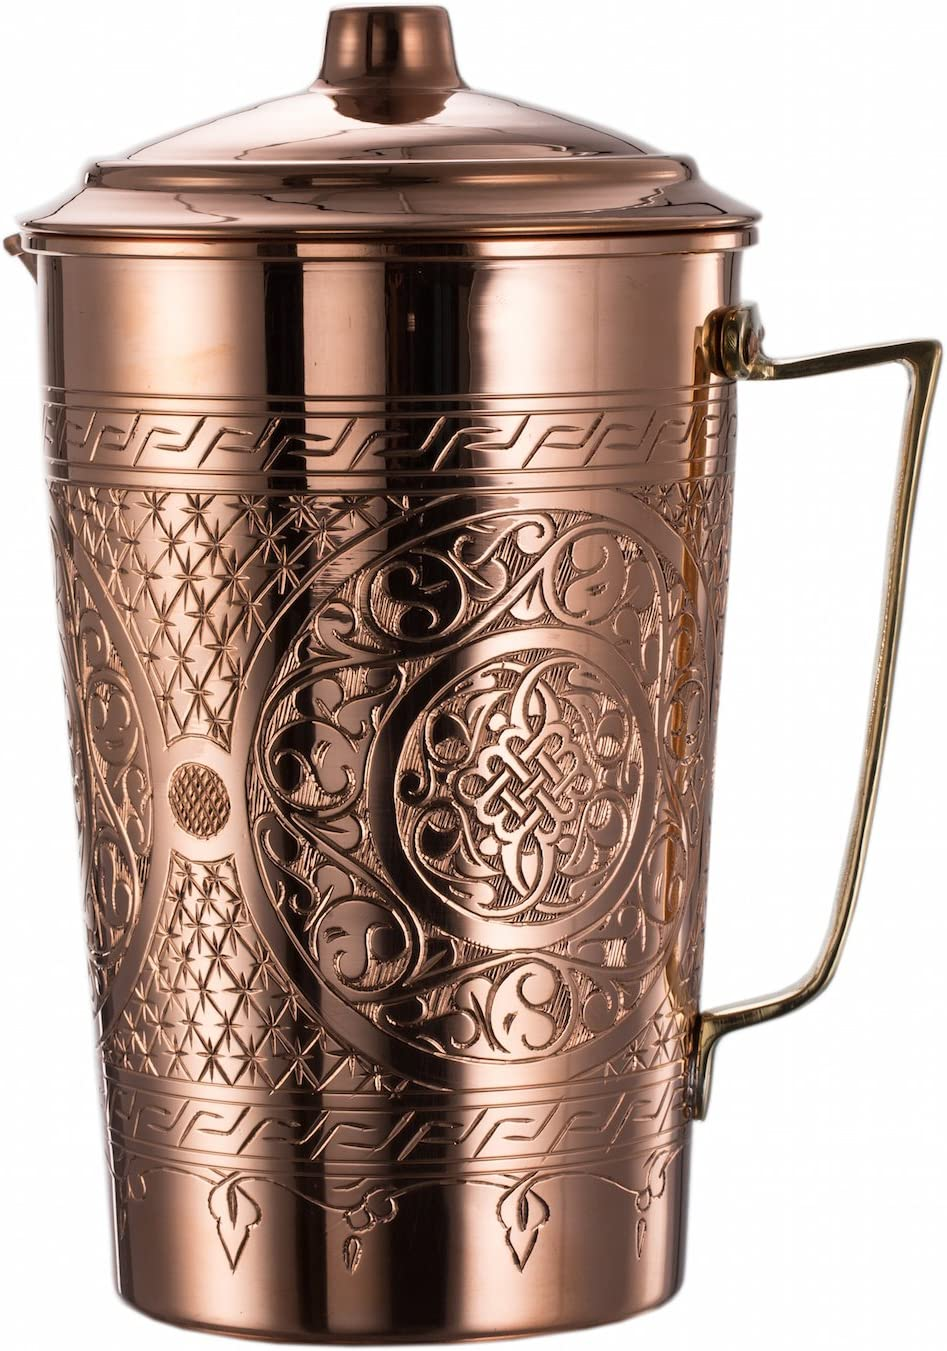 New CopperBull 2017 Heavy Gauge 1mm Solid Hammered Copper Water Moscow Mule Serving Pitcher Jug with Lid, 2.2-Quart (Engraved Copper)